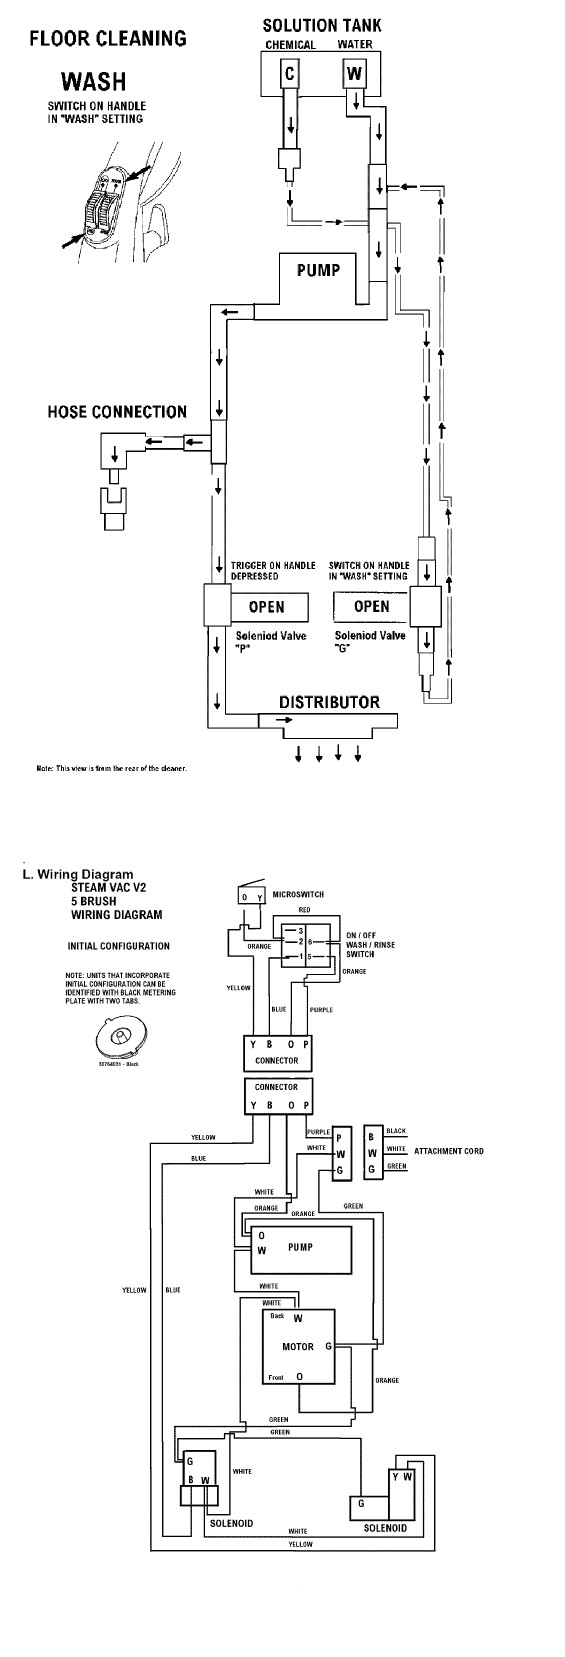 hoover steamvac carpet cleaner not dispensing liquid carpet i have located the schematic diagrams for my machine will this help you diagnose my problem